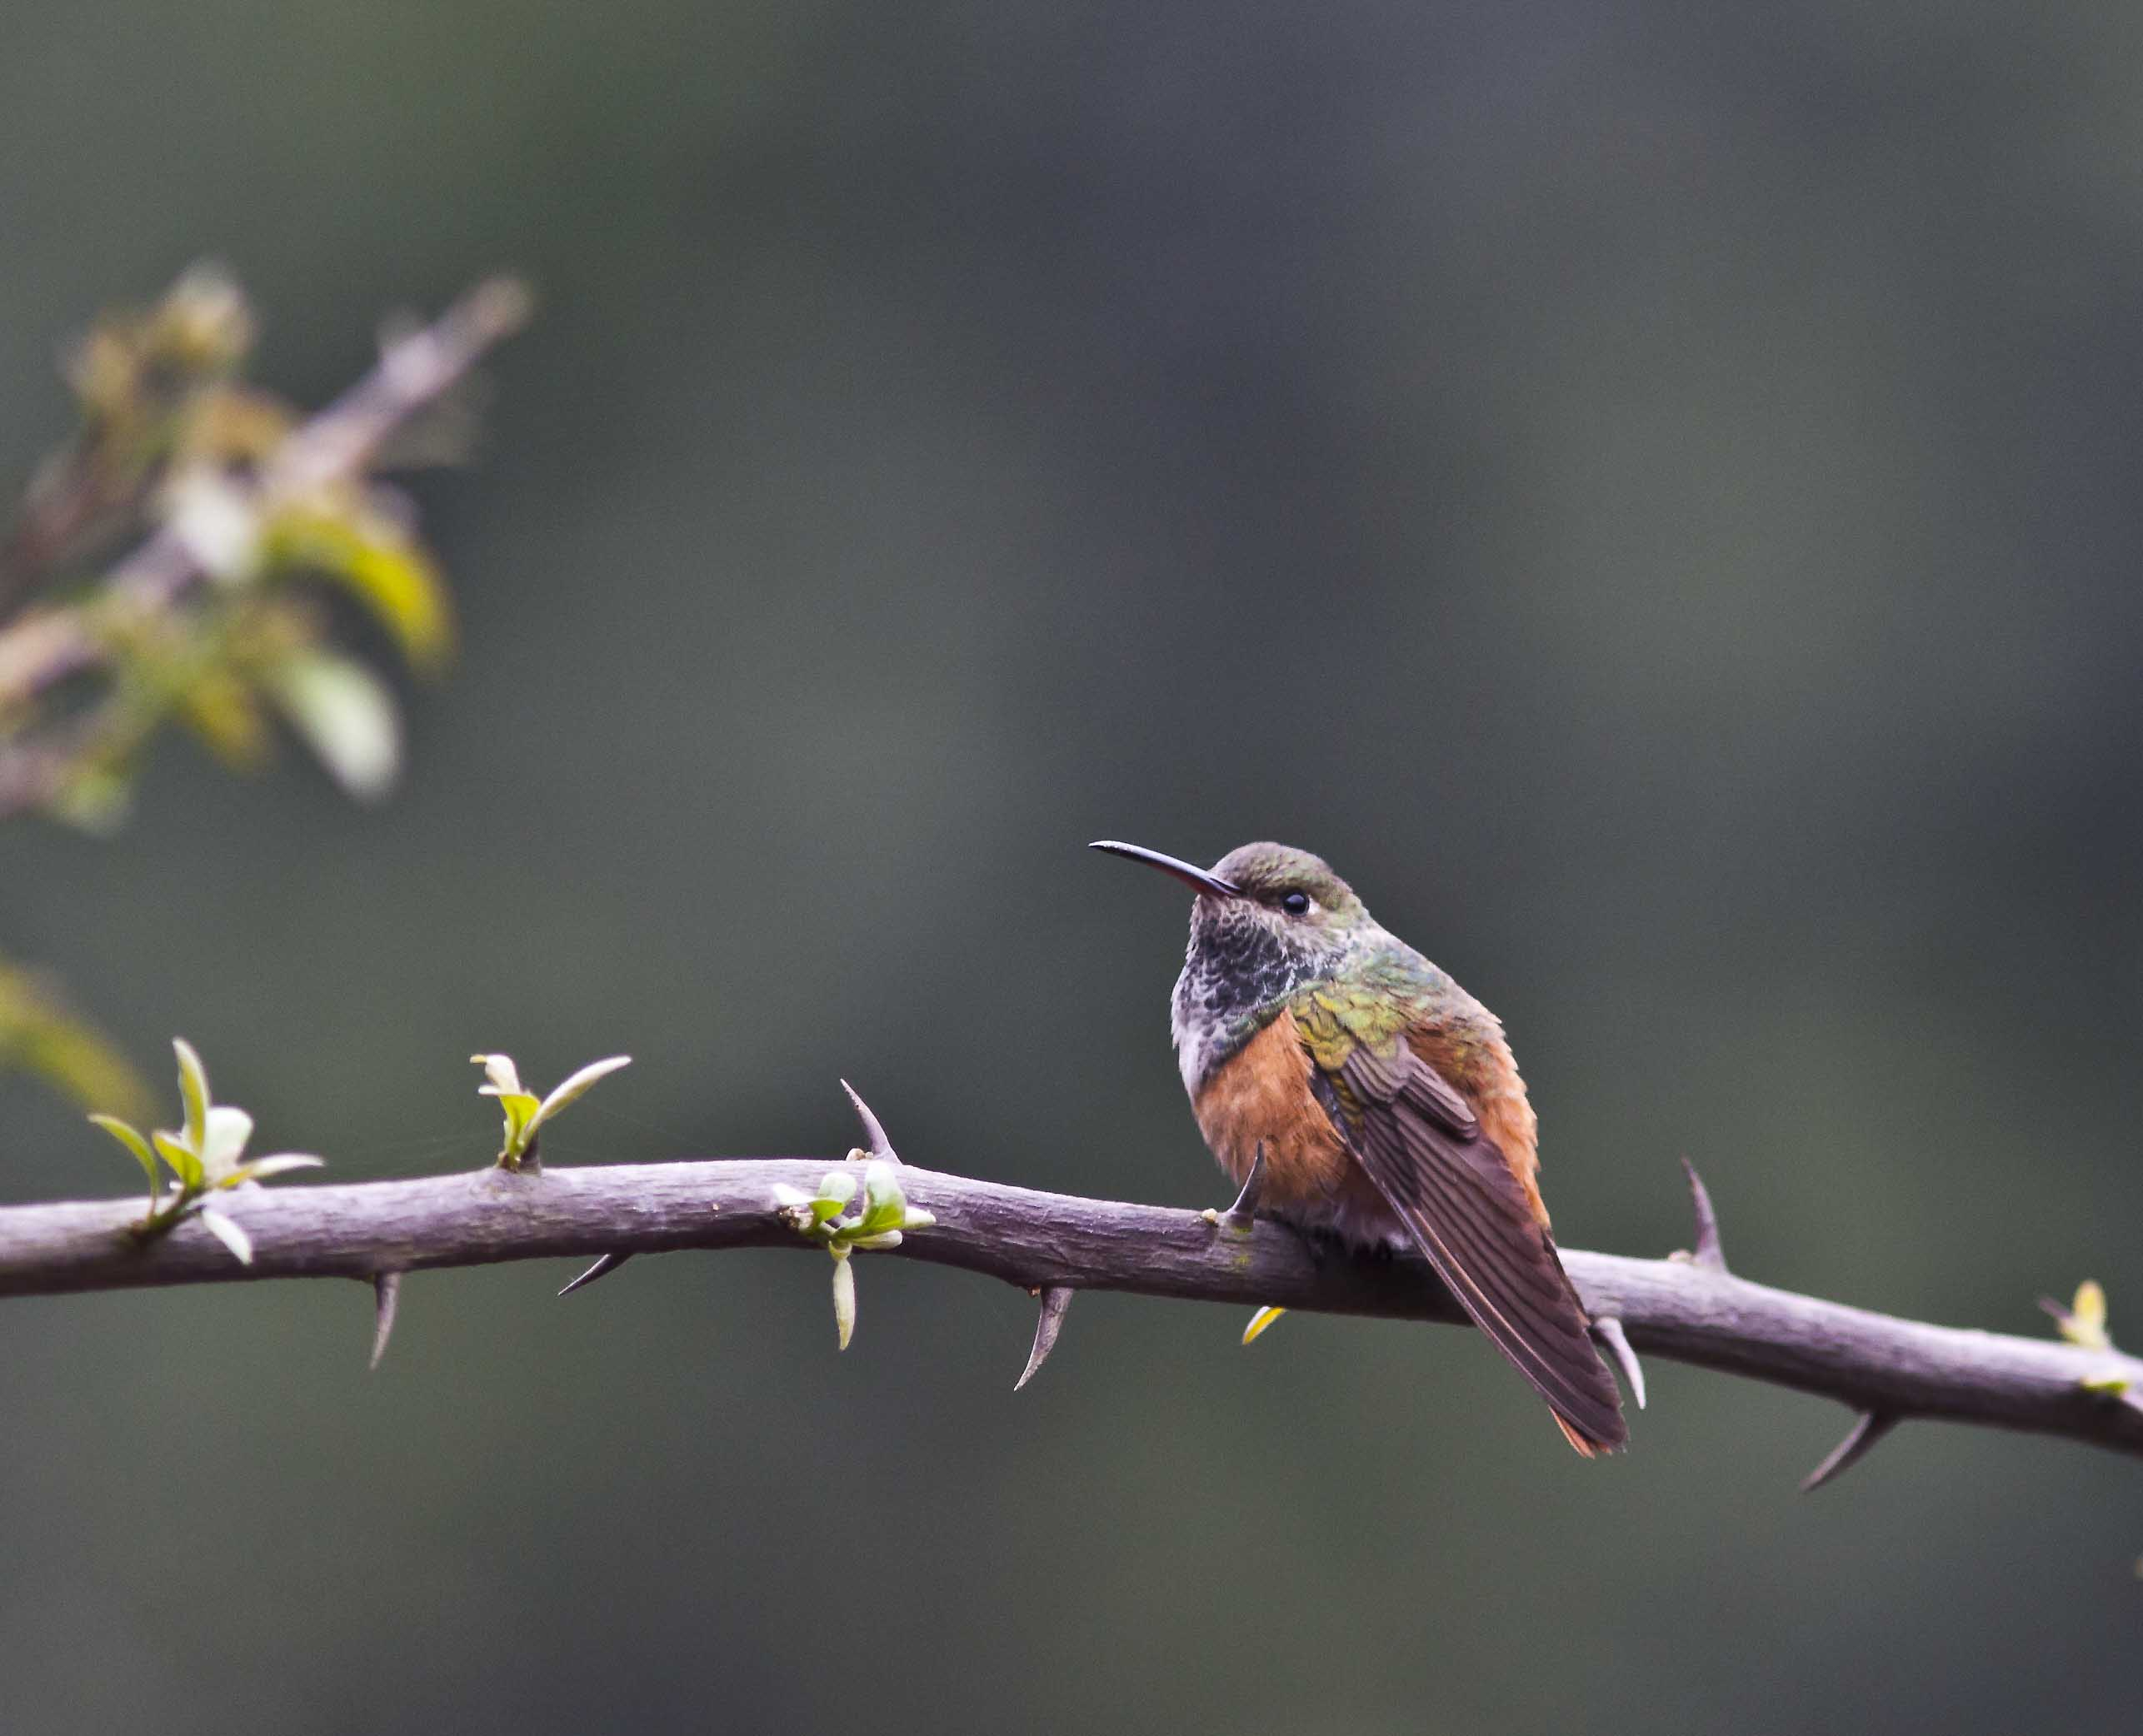 Scientific Name: Amazilia Hummingbird - Photo: Melissa Paredes Berrocal